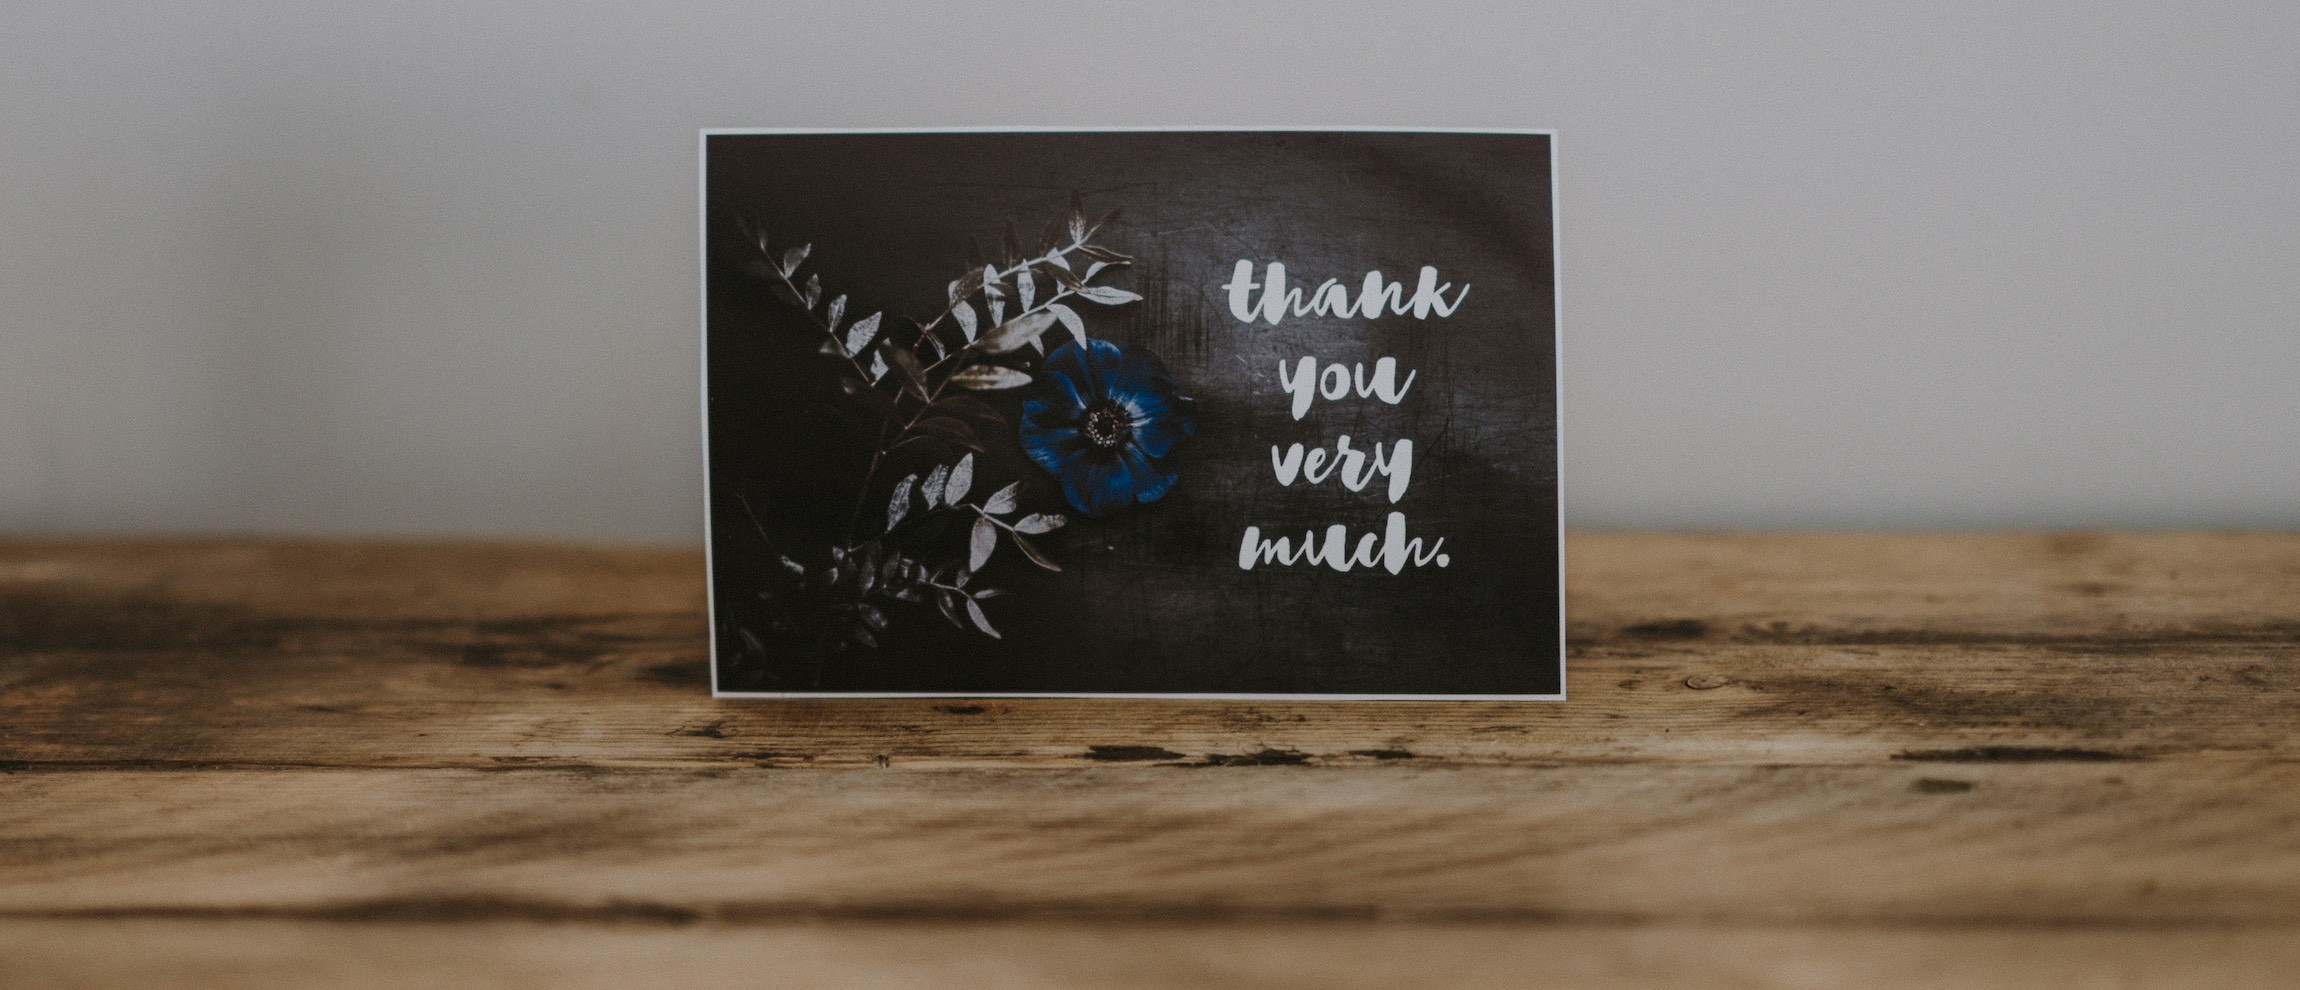 Employee Rewards - a little thanks can go a long way